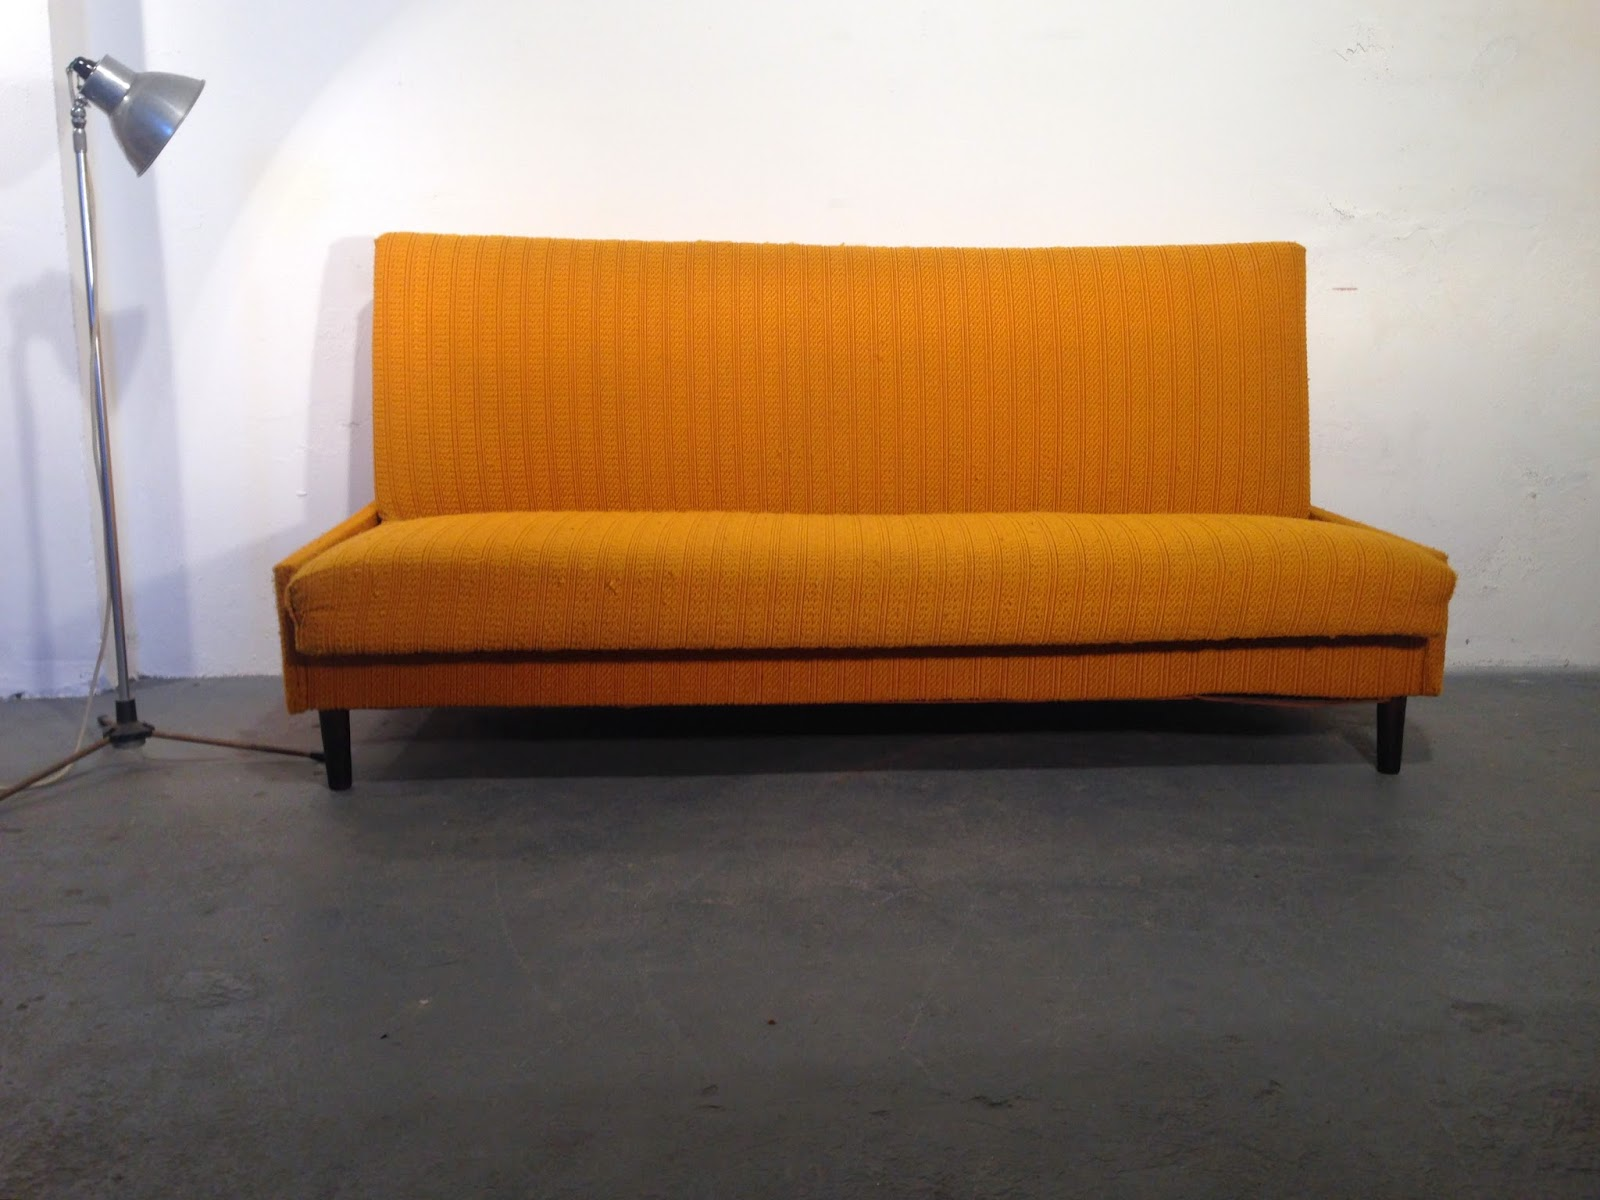 cheapest sofas in ireland sydney vintage furniture ocd 1960s sofa bed